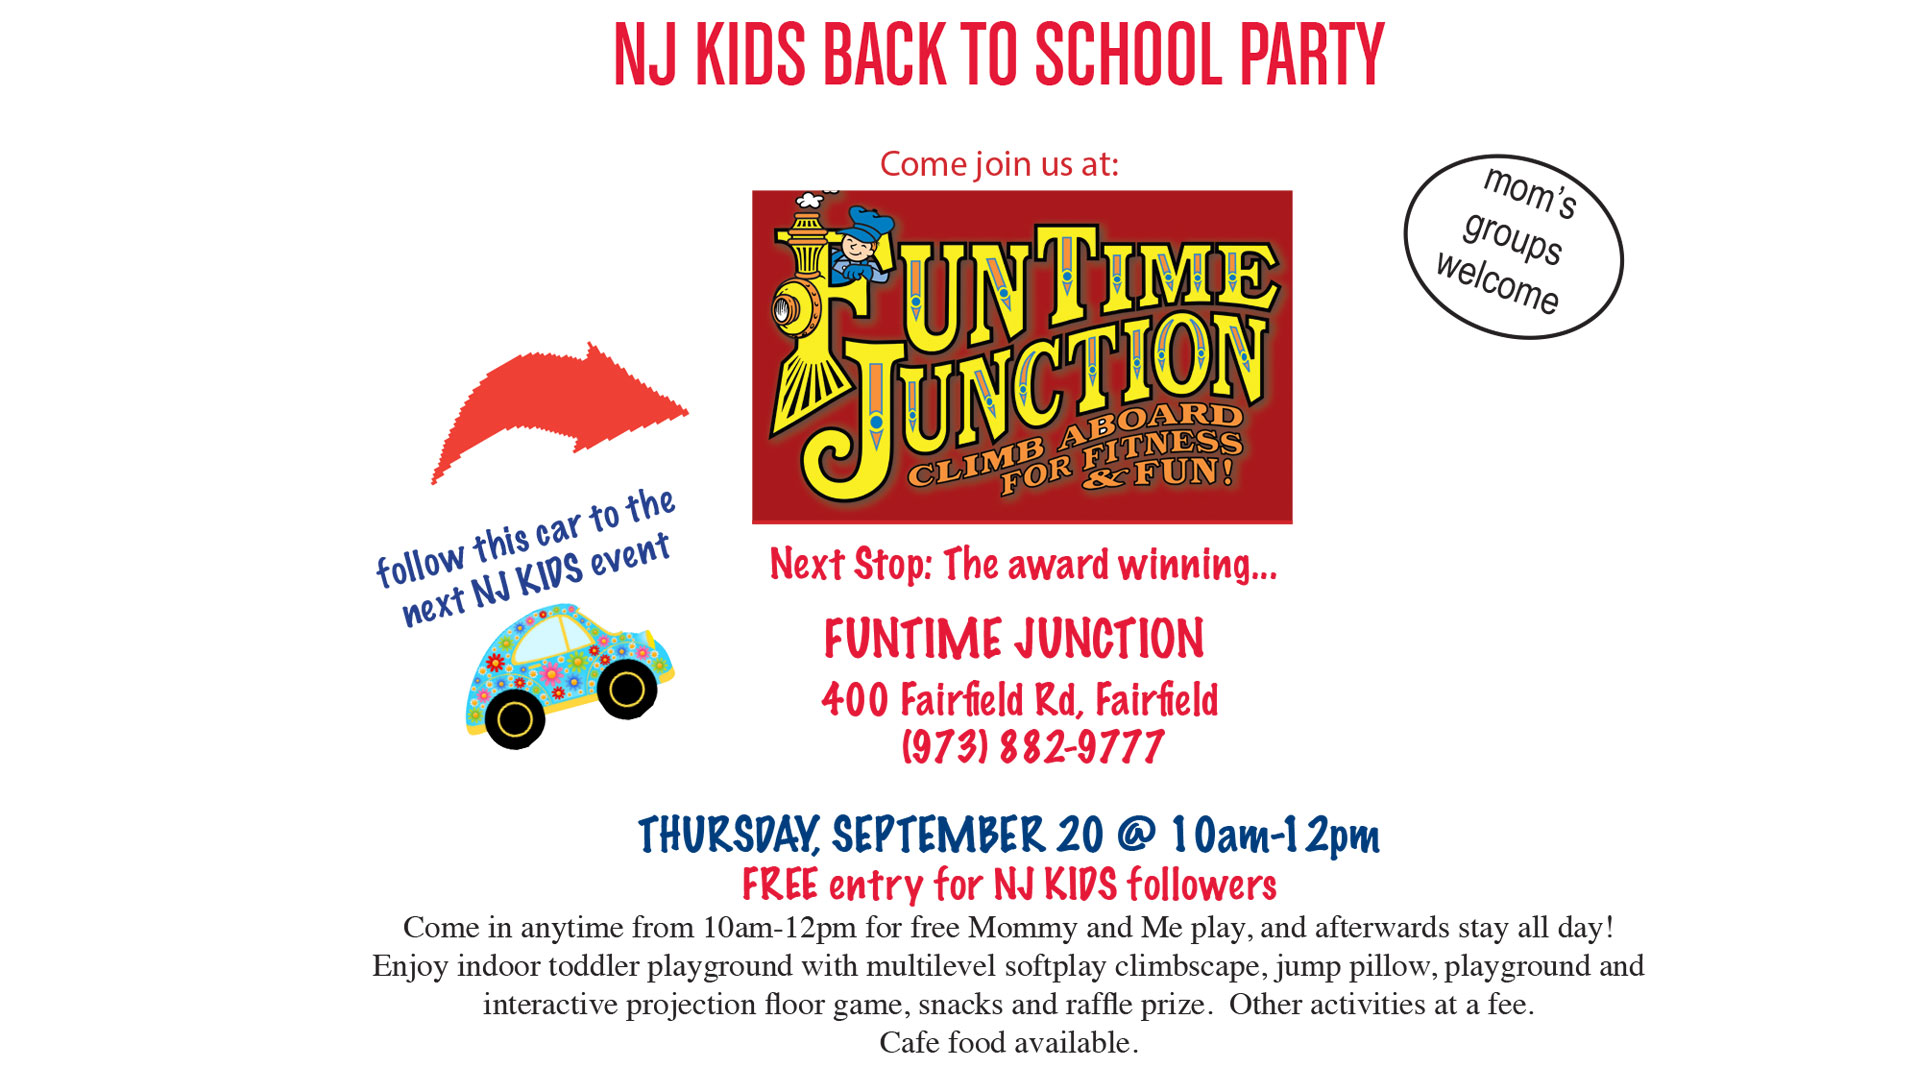 Join NJ Kids Back to School Party at Funtime Junction